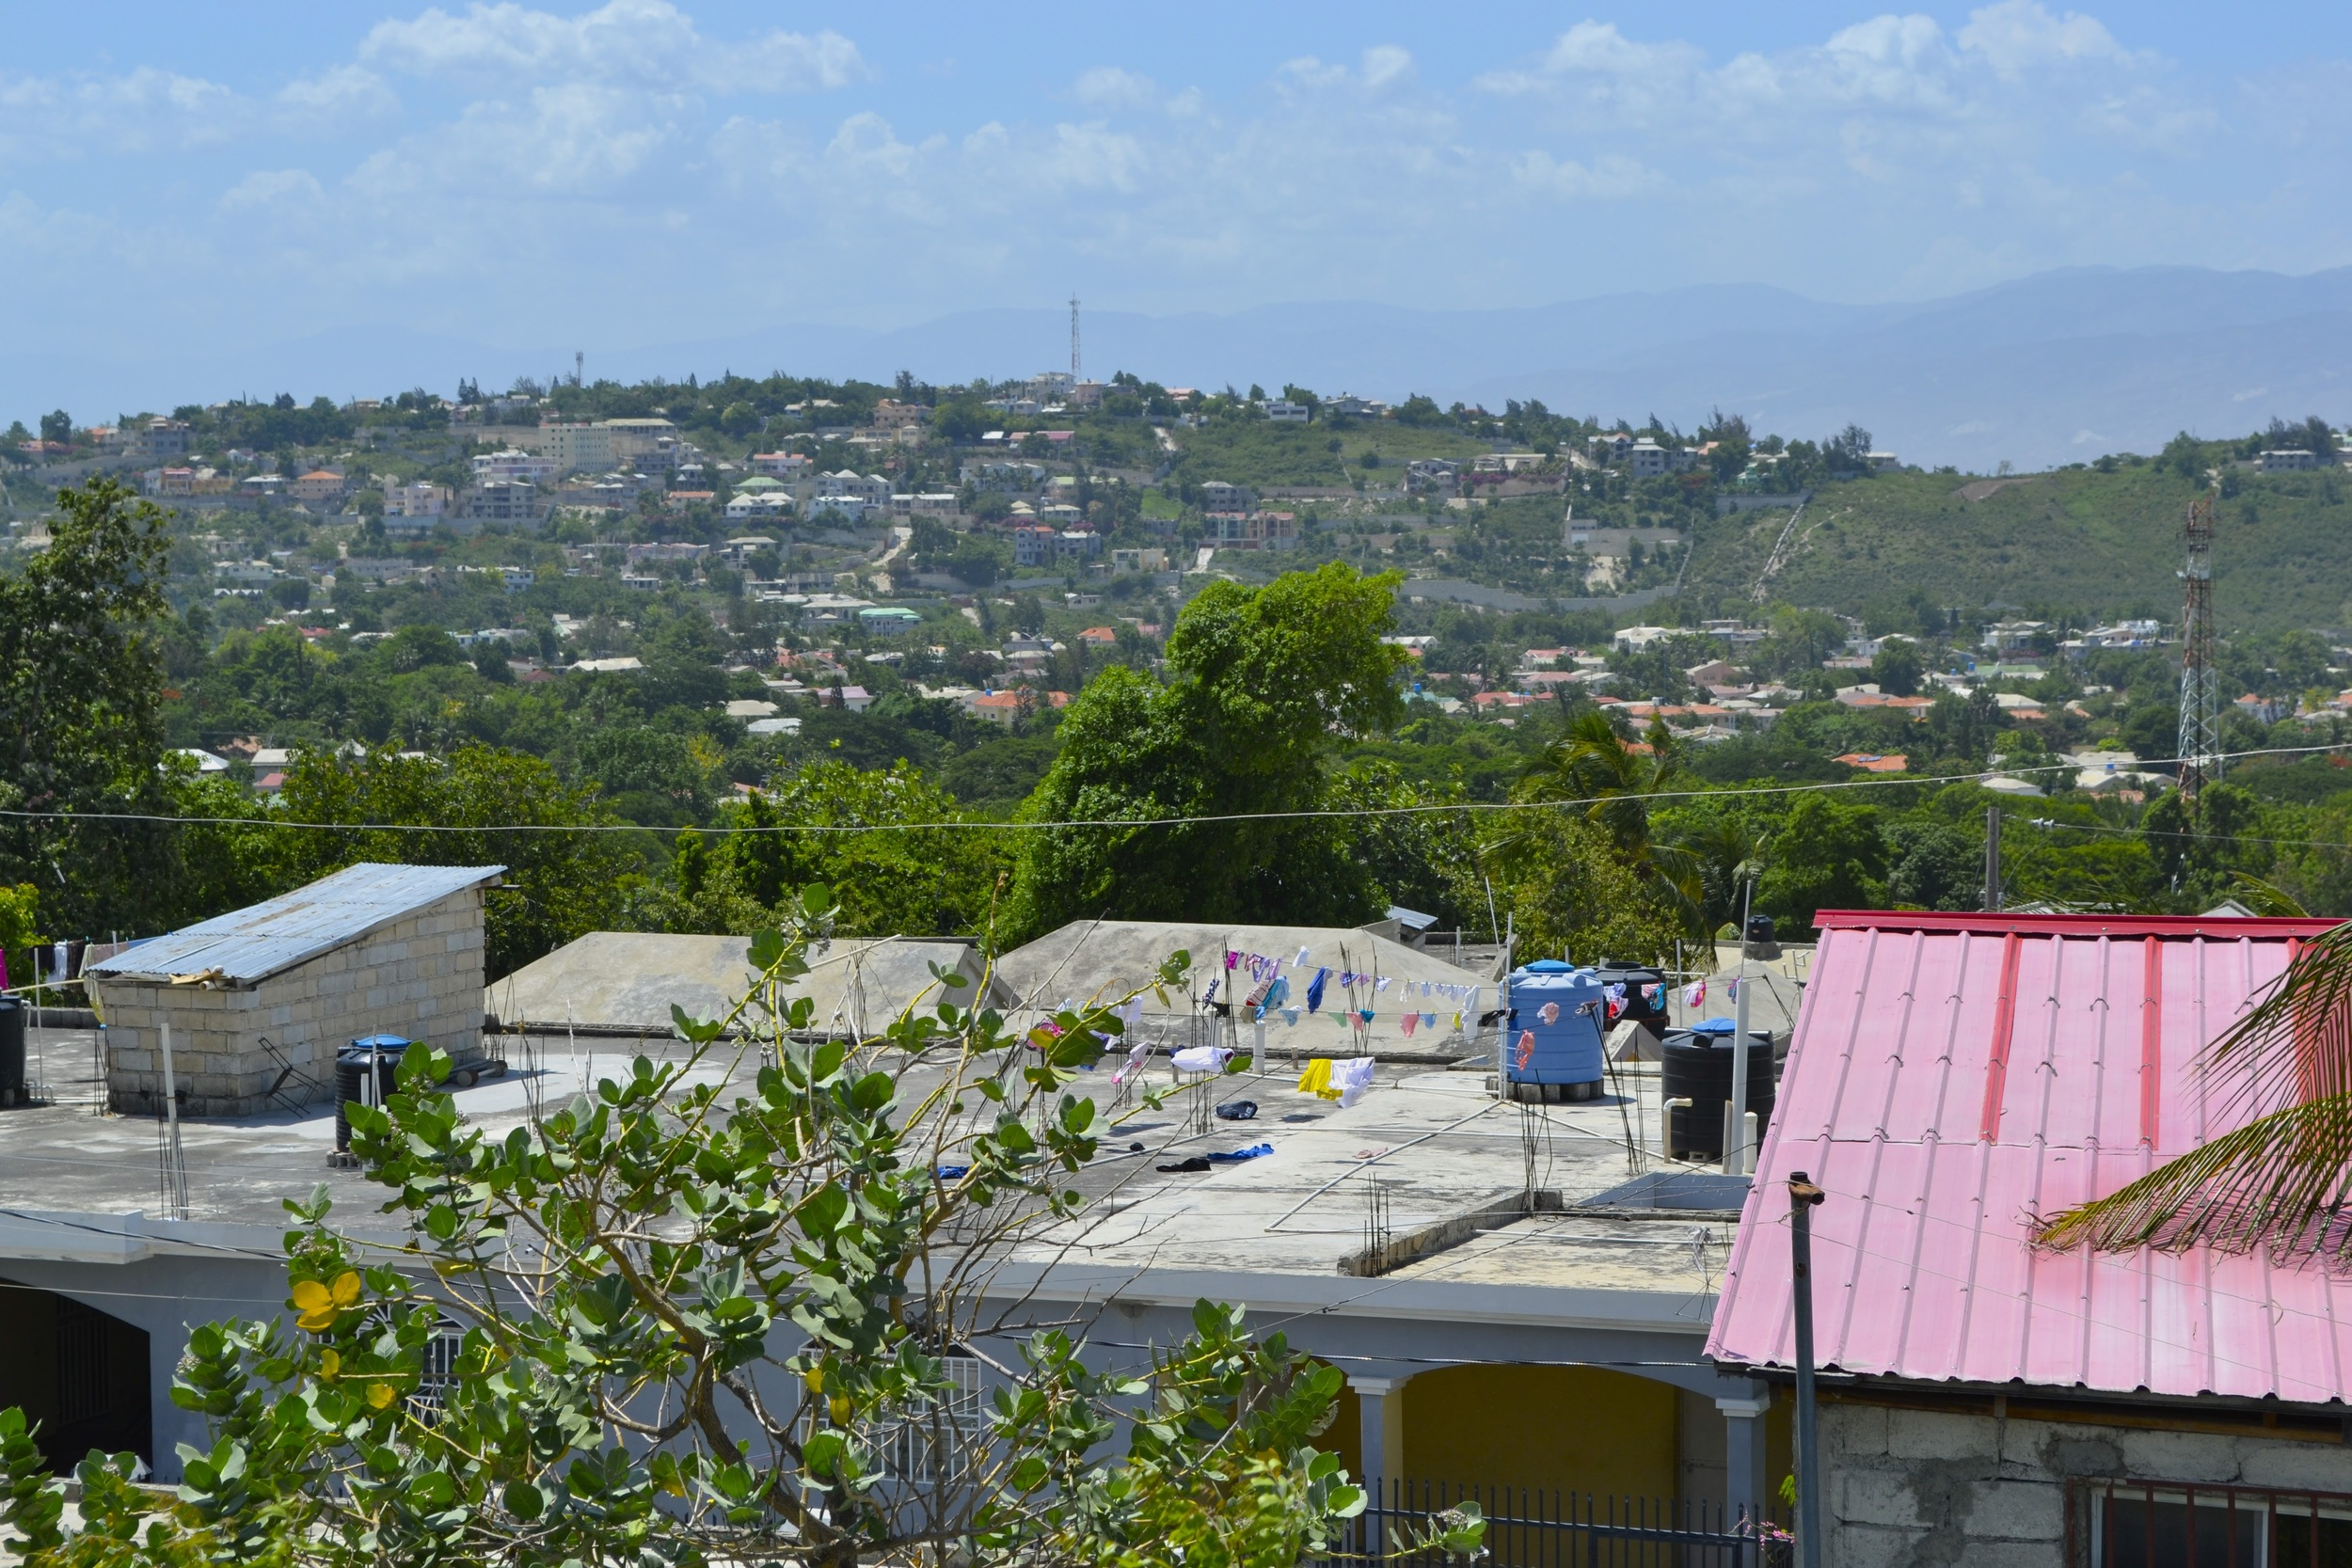 haiti2015_day1and2_0088.jpg